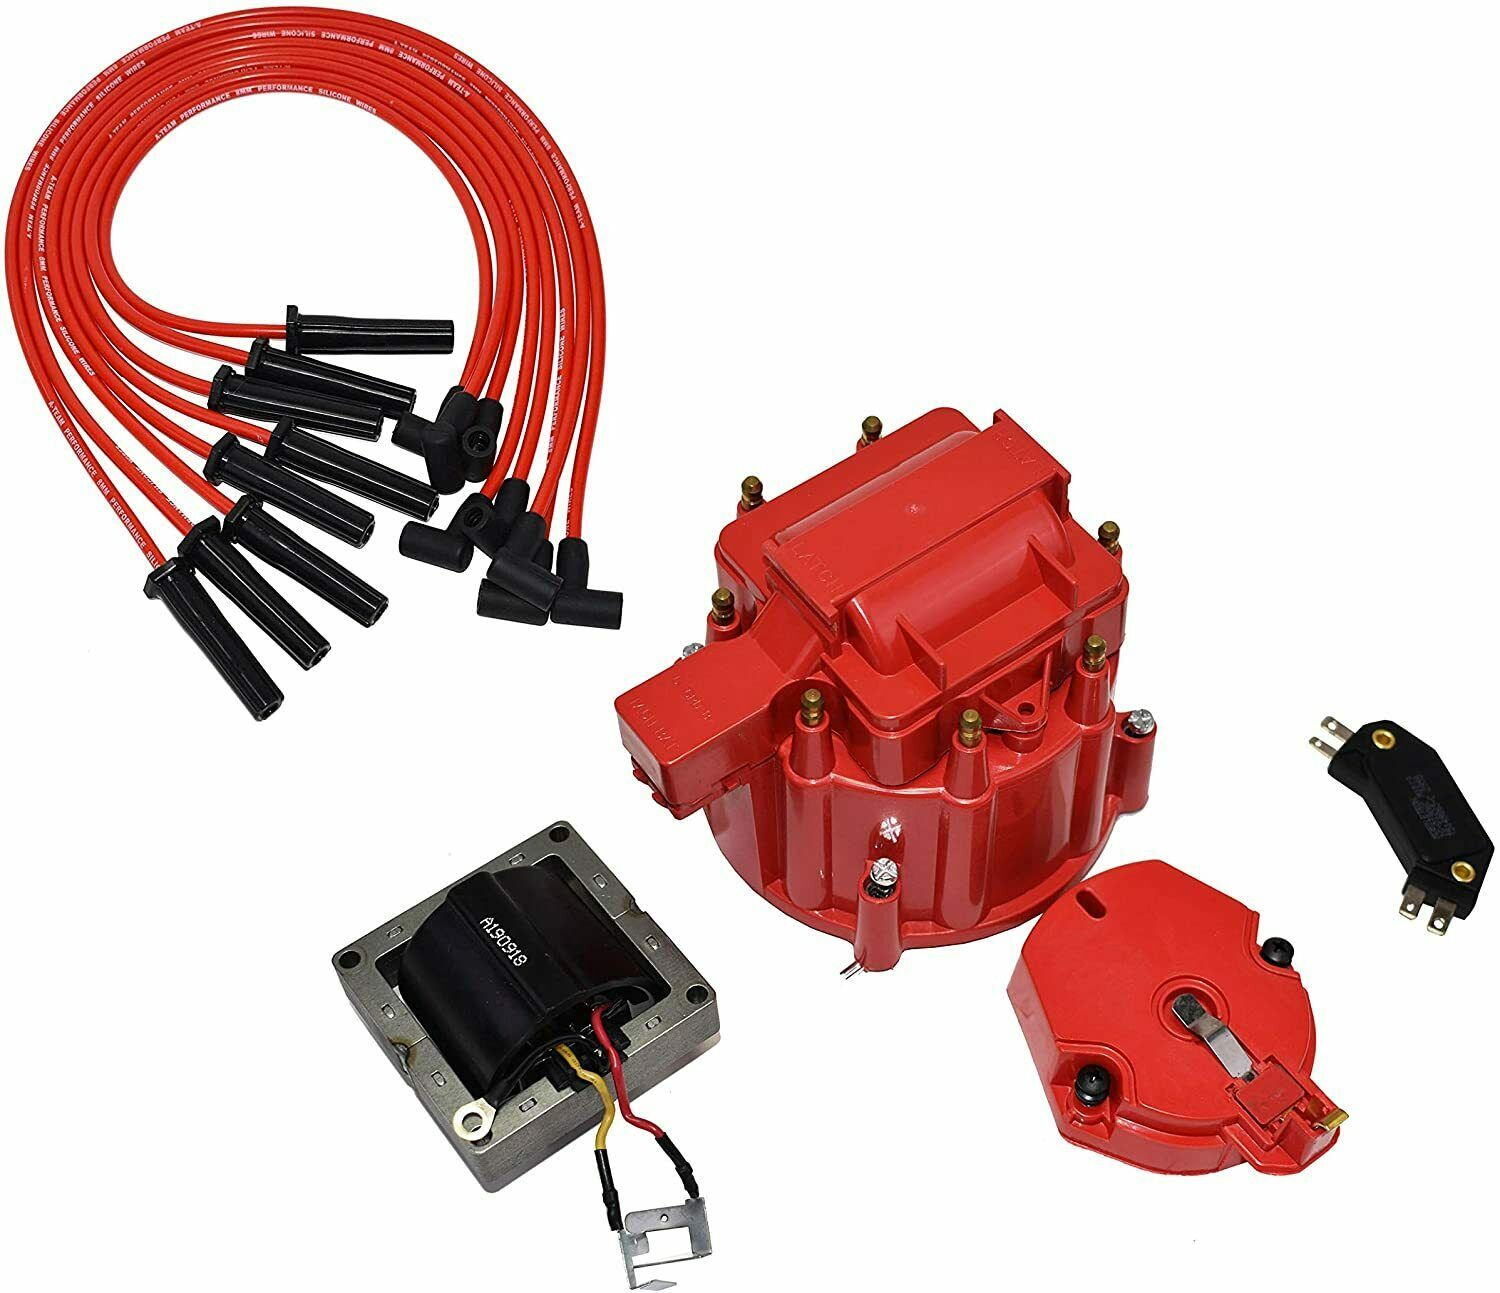 Chevy BBC 396 402 427 454 HEI Distributor Tune Up Kit & 8.0mm Spark Plug Wires